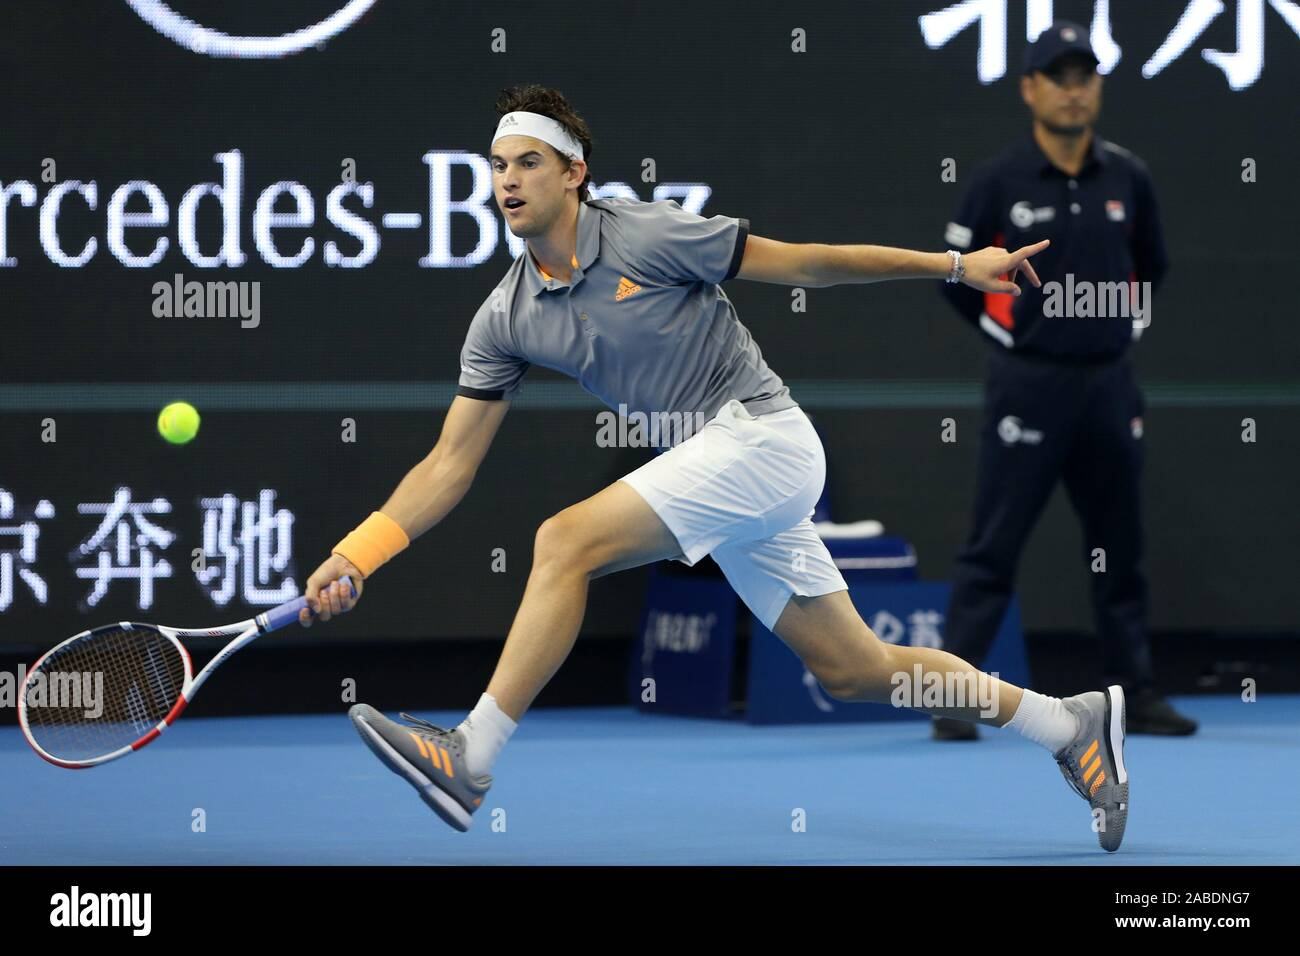 Chinese professional tennis player Zhang Zhizhen competes against Austrian professional tennis player Dominic Thiem at the second round of 2019 China Stock Photo